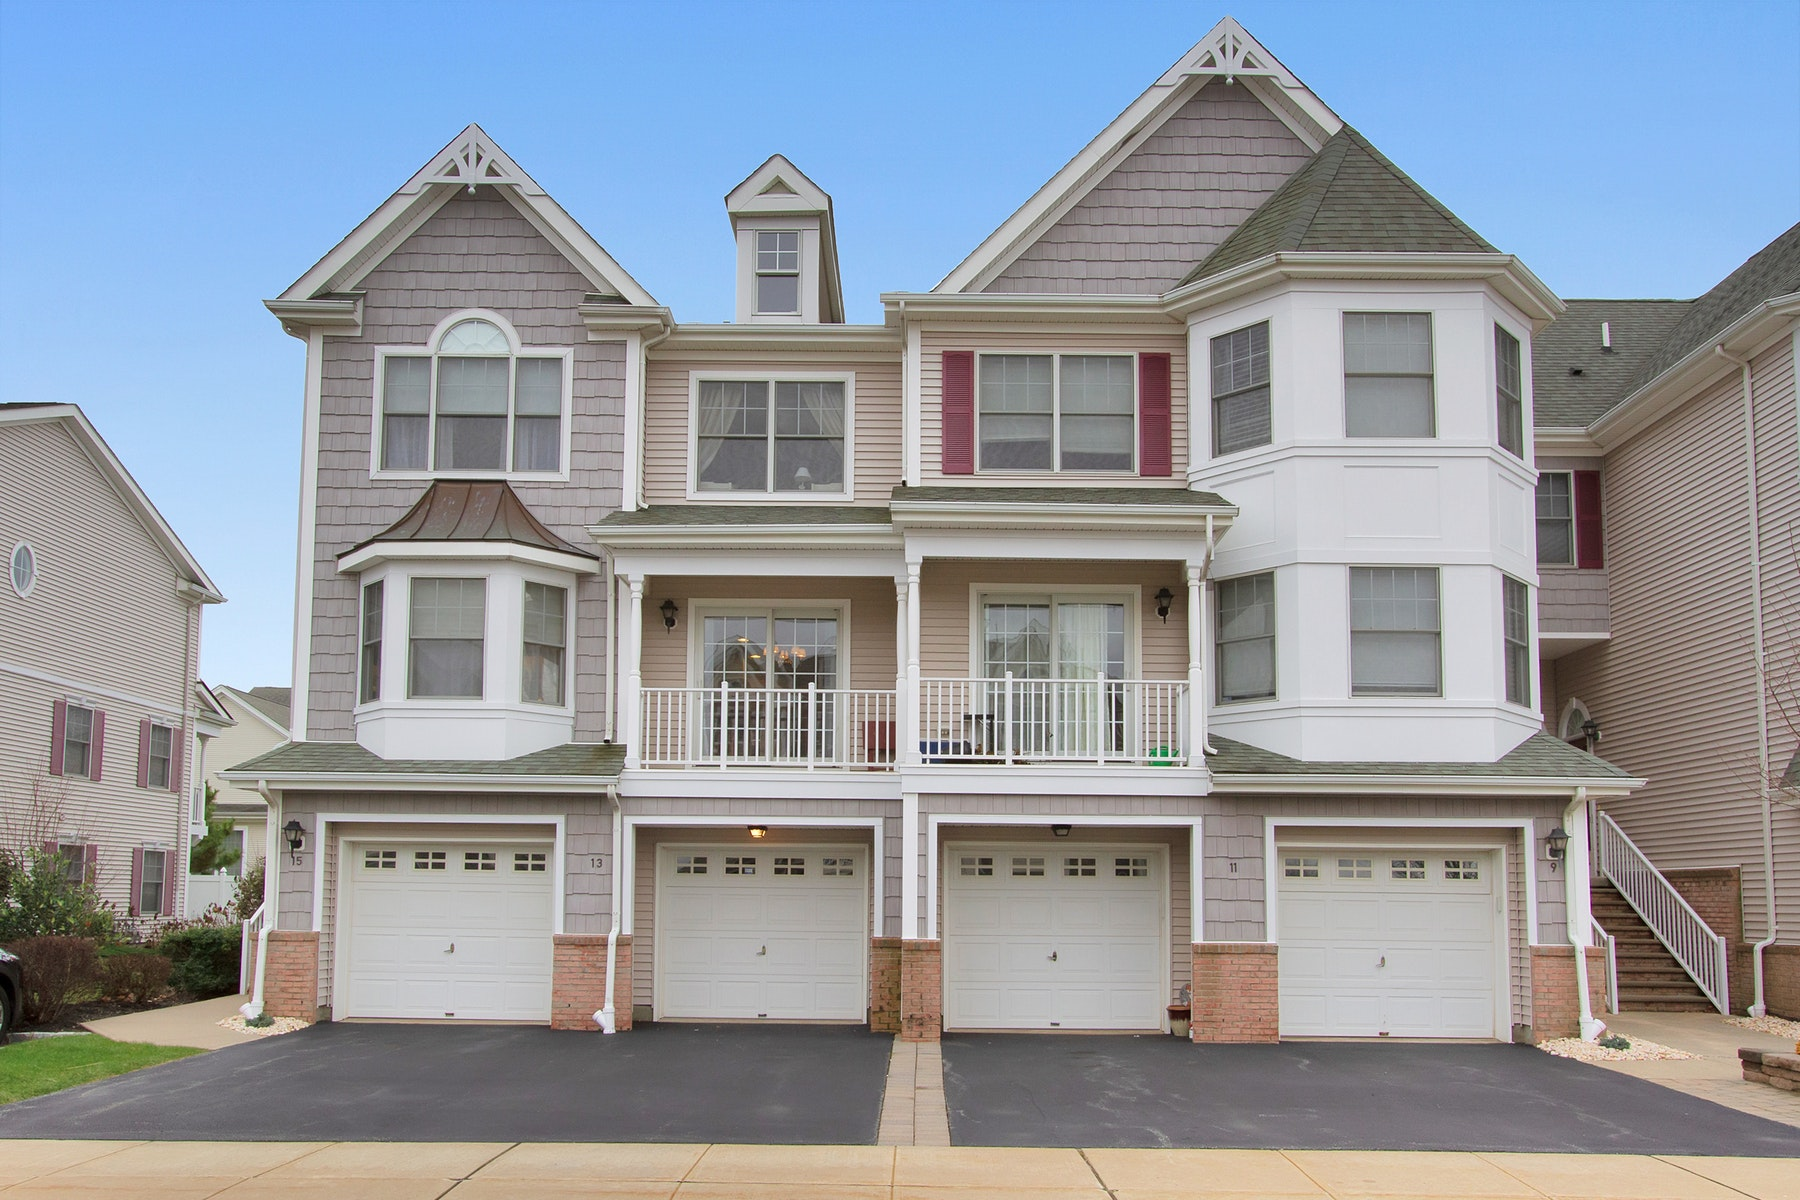 Townhouse for Sale at Harbor Village at Lighthouse Bay 13 Raritan Reach Road, South Amboy, New Jersey 08879 United States